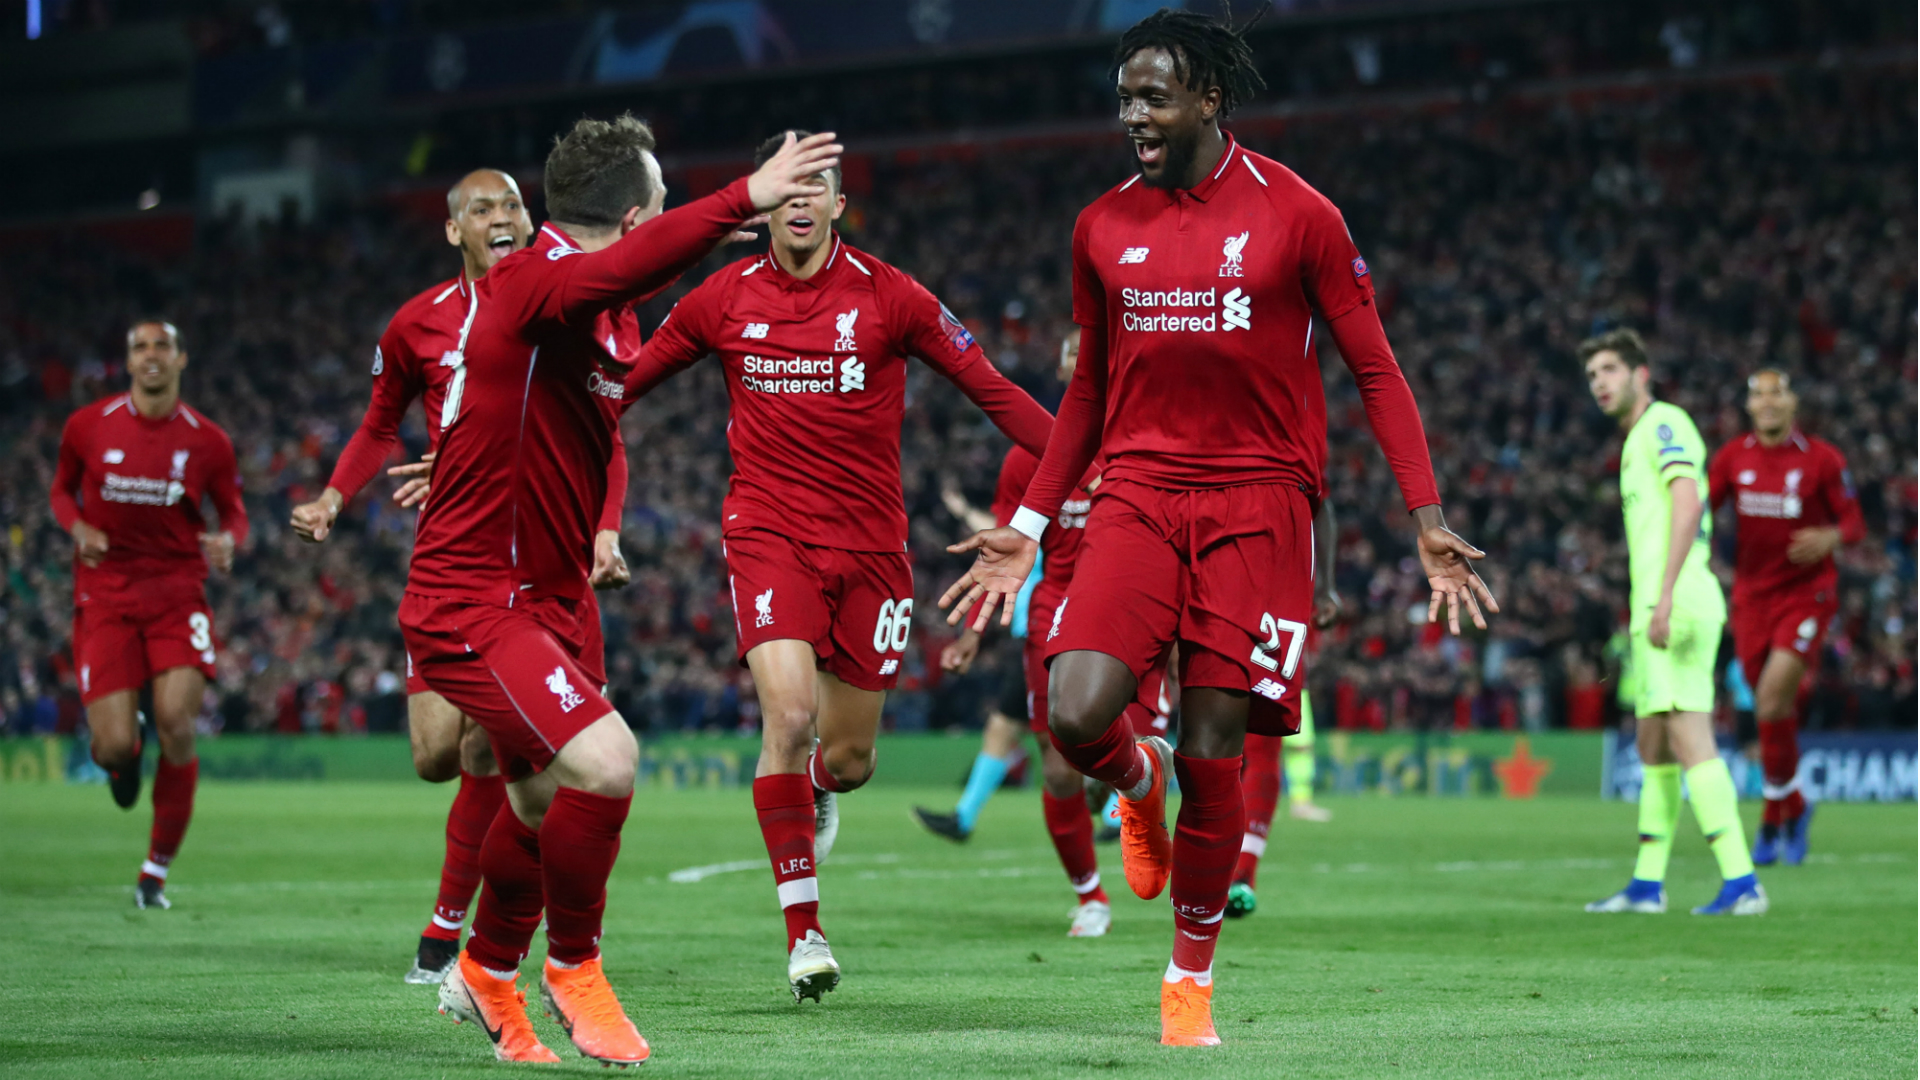 Barcelona falls asleep on goal to cap historic Champions League comeback by Liverpool